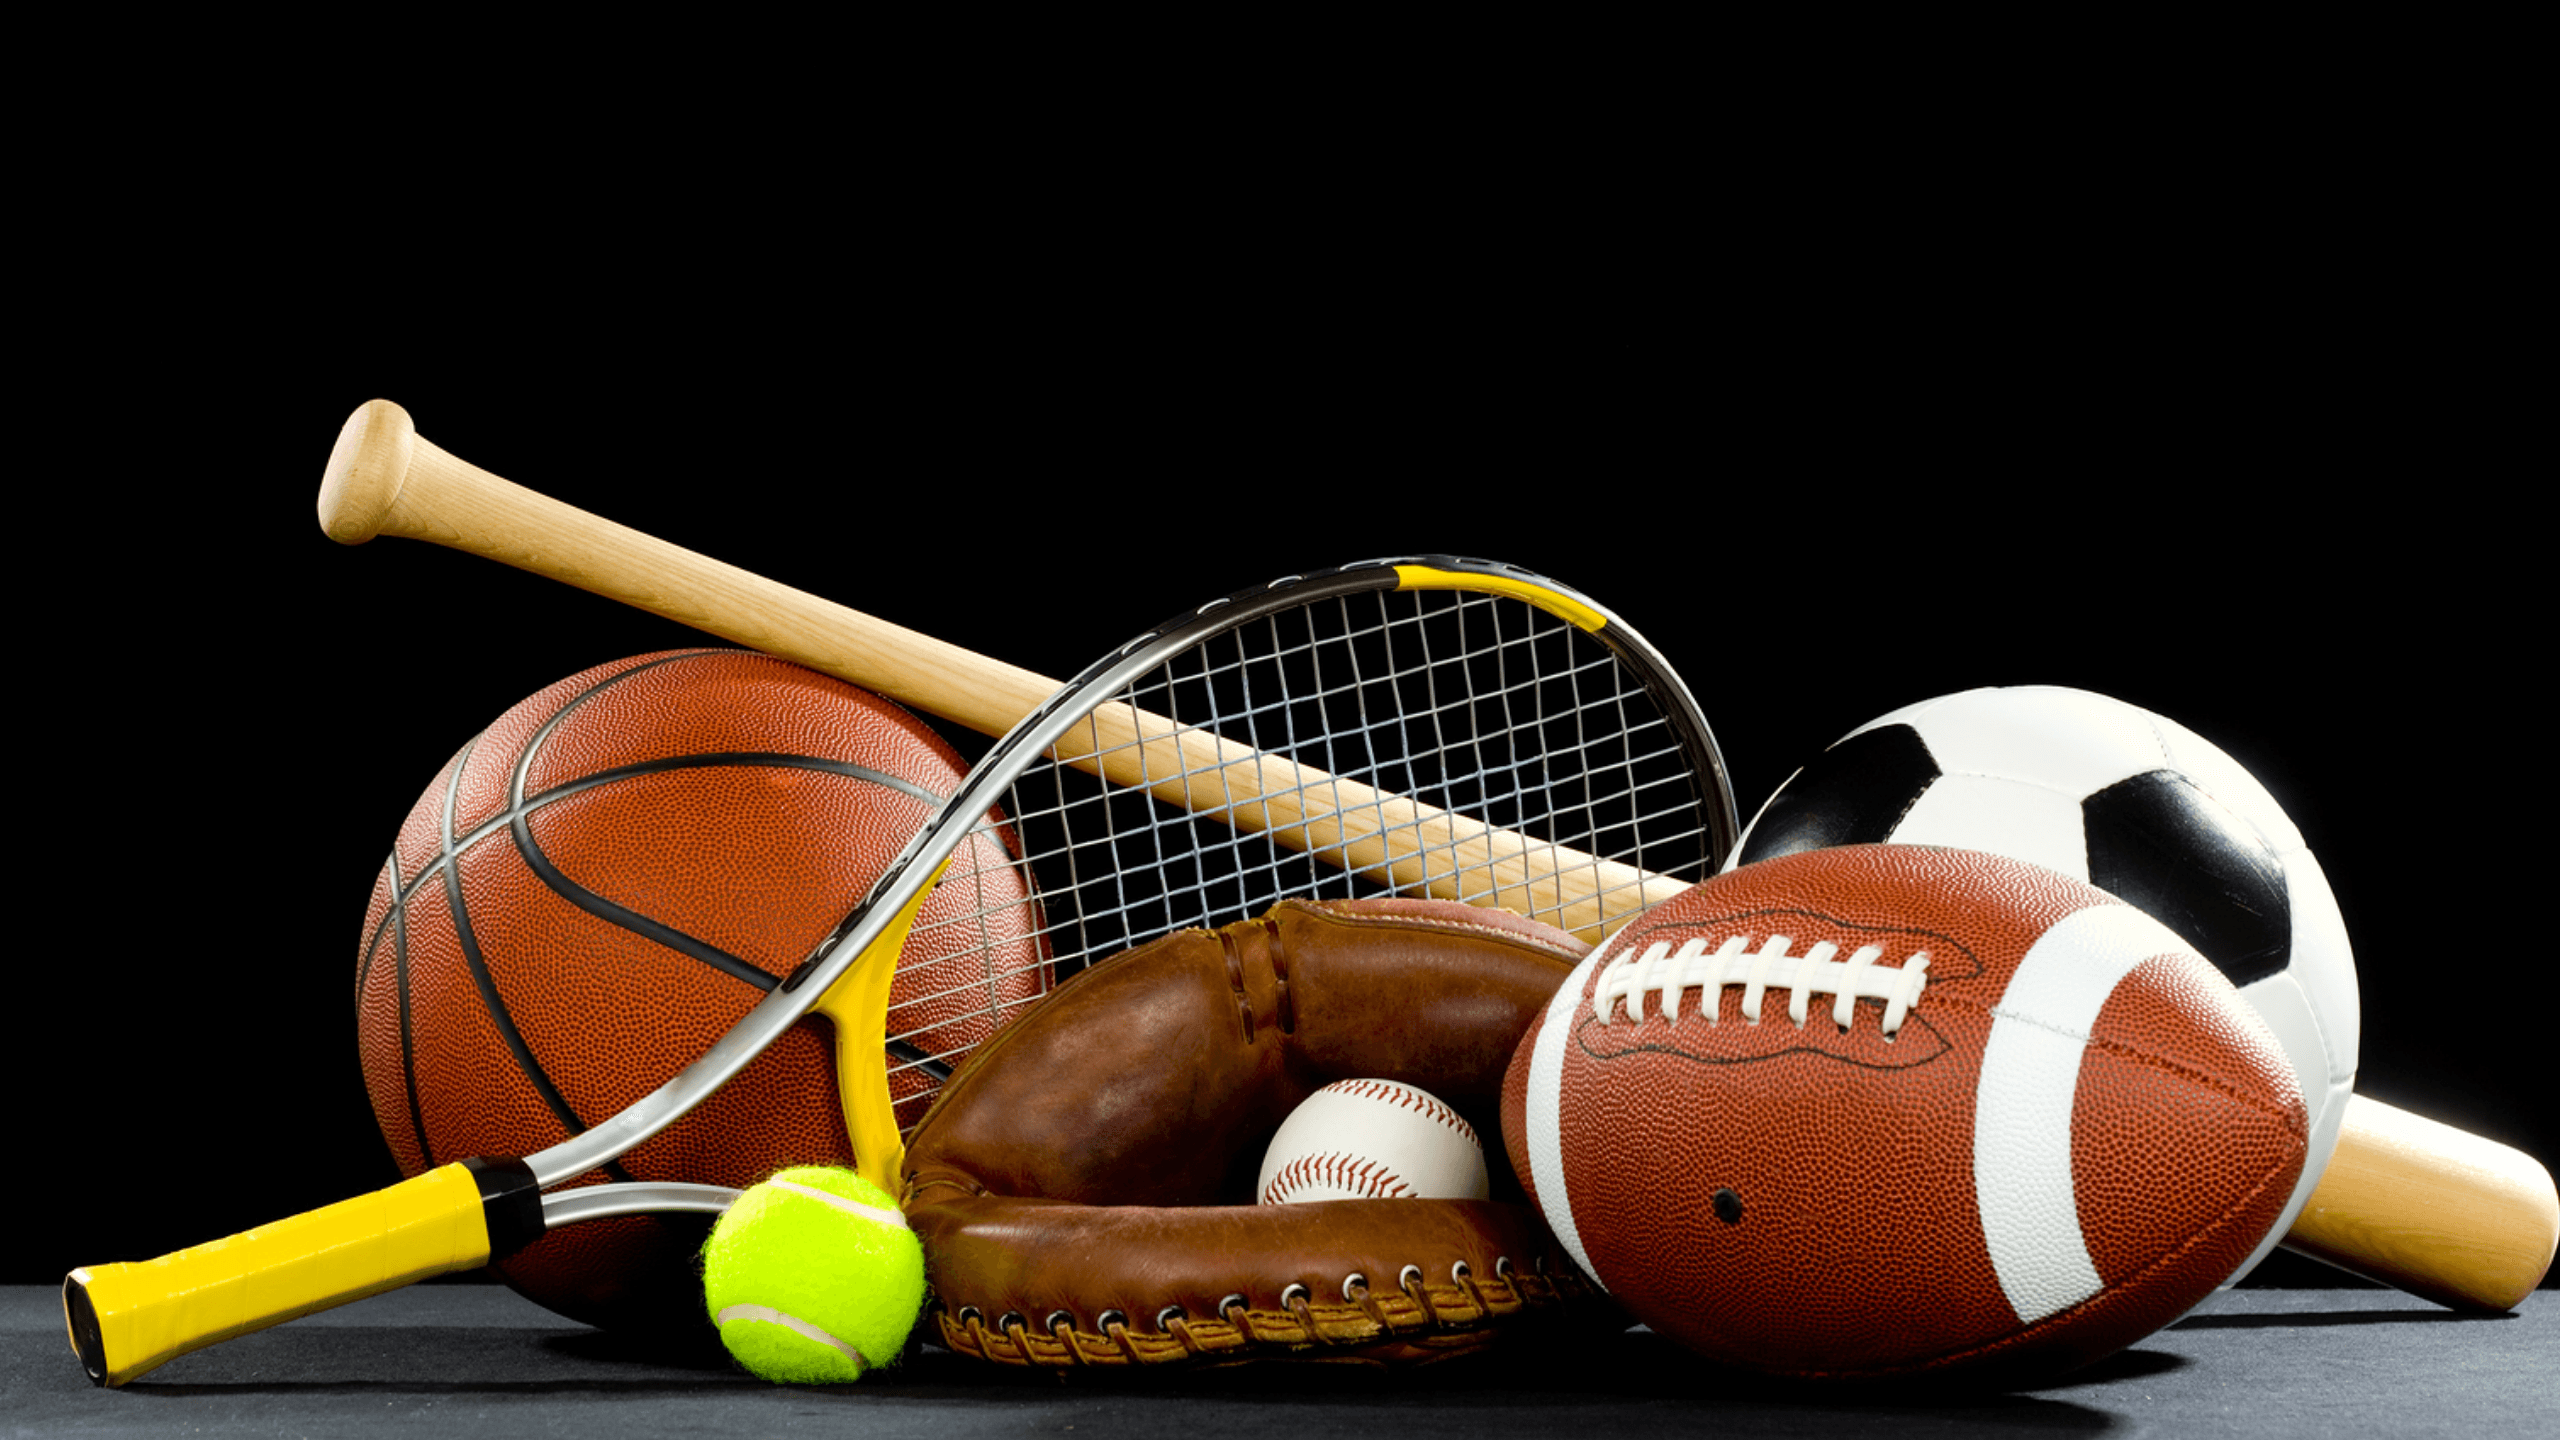 Sport Wallpaper Life: The Misconception Of The Multi-Sport Athlete And Sport